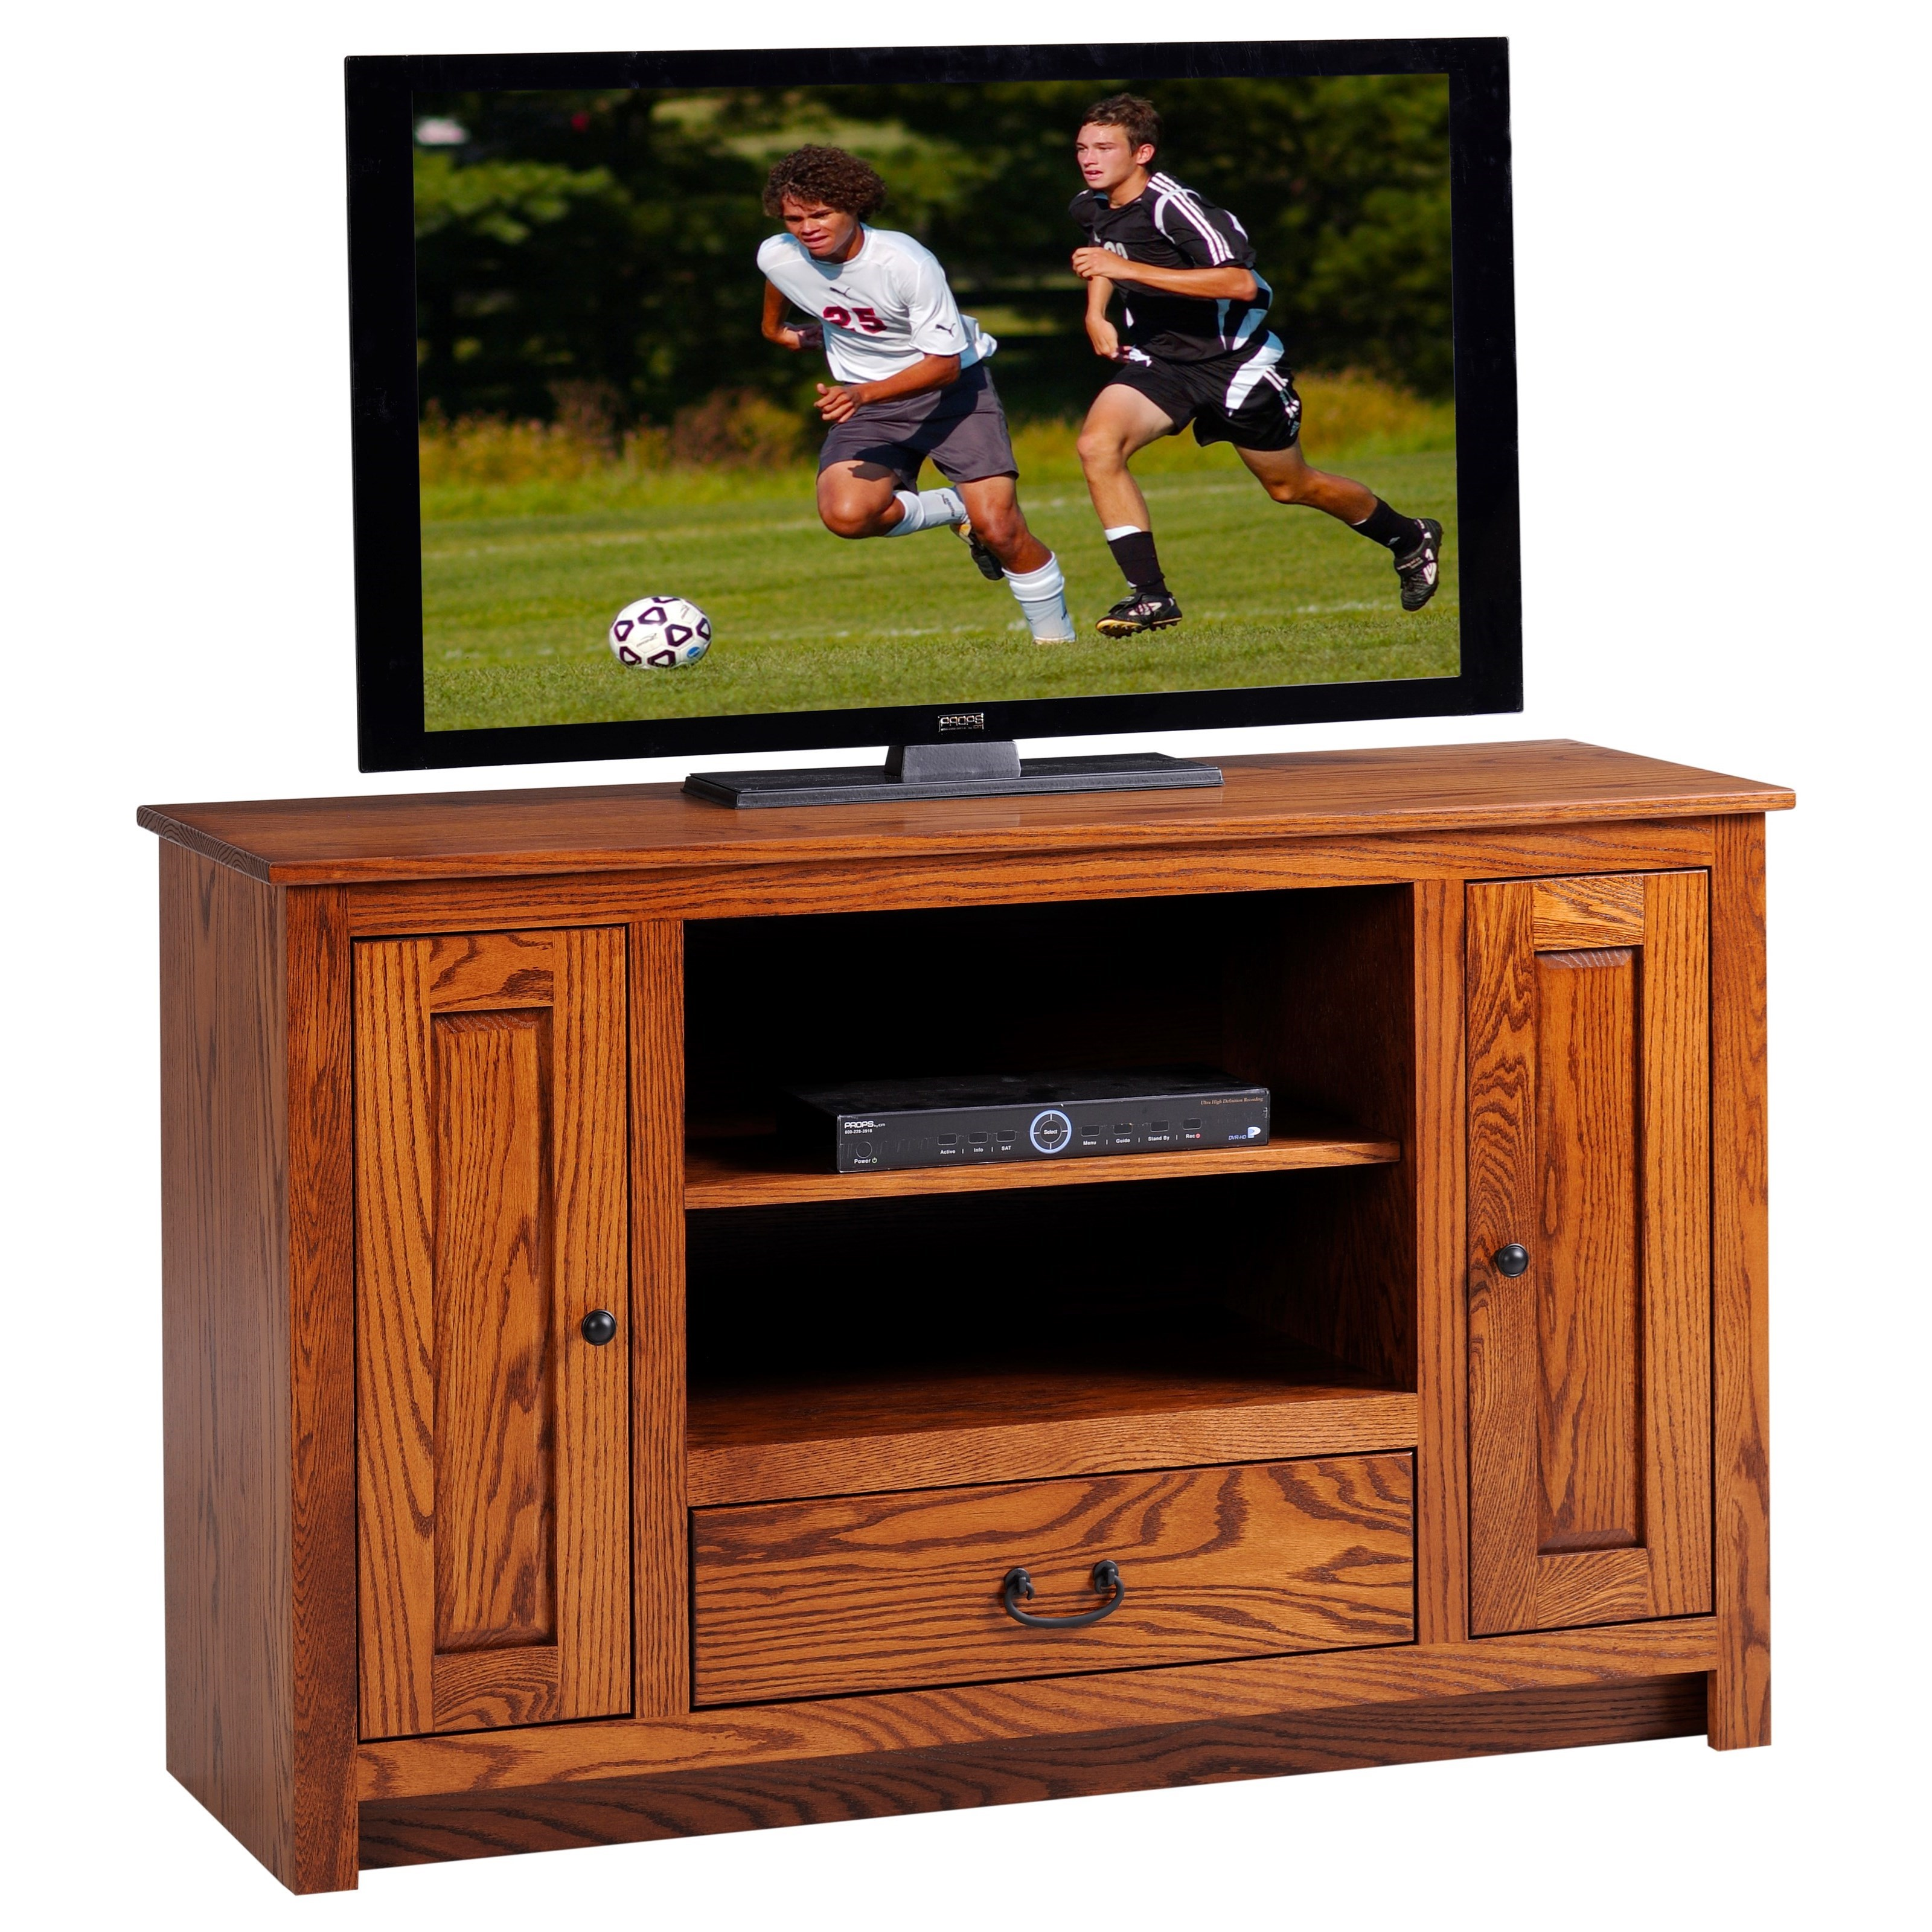 "Express 52"" TV Stand by Y & T Woodcraft at Saugerties Furniture Mart"